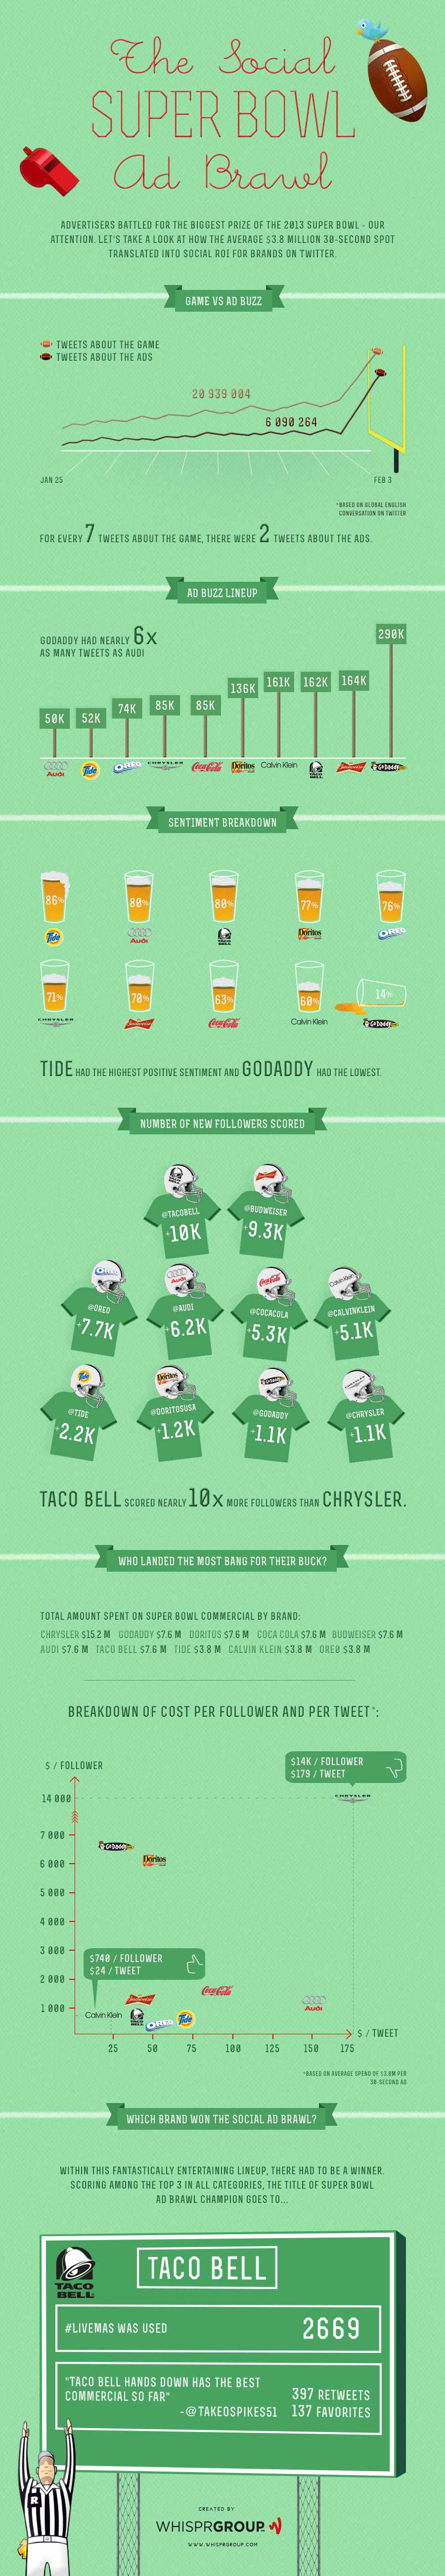 Infographic-Superbowl-a